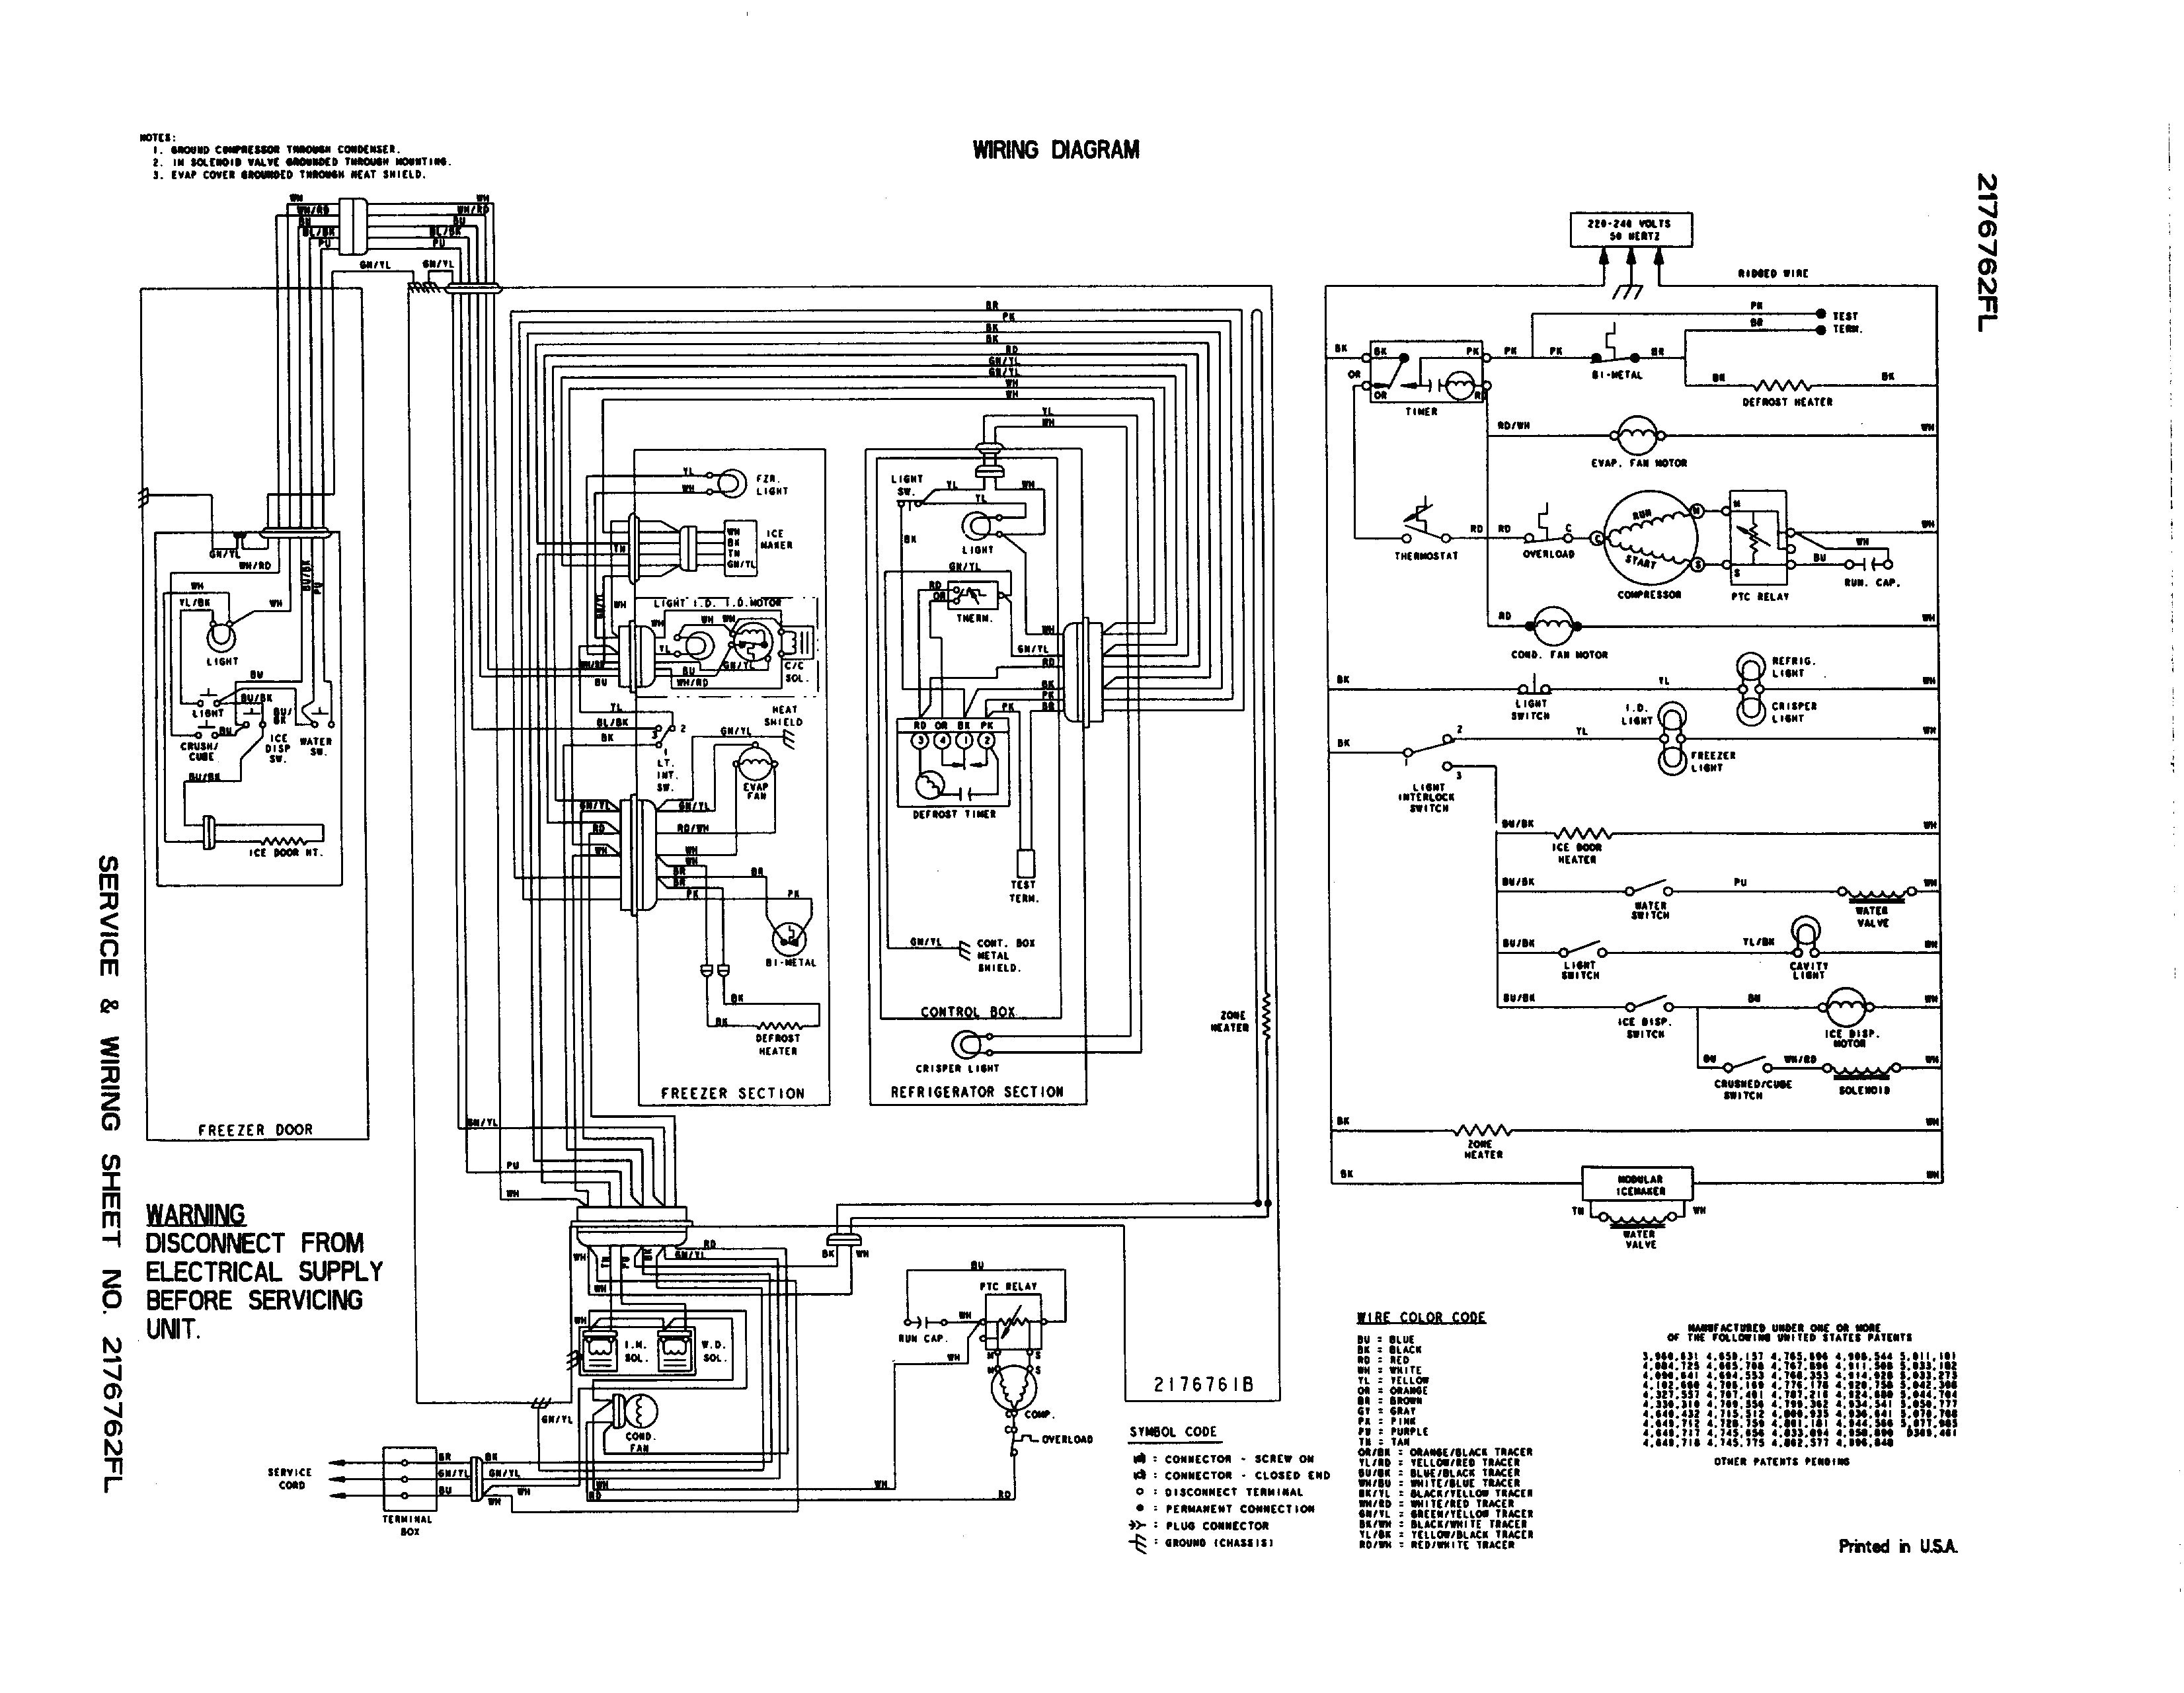 whirlpool refrigerator wiring diagram Collection-Wiring Diagram Whirlpool Ice Maker Valid Ge Refrigerator Wiring Diagram Ice Maker Fresh Whirlpool 8-c